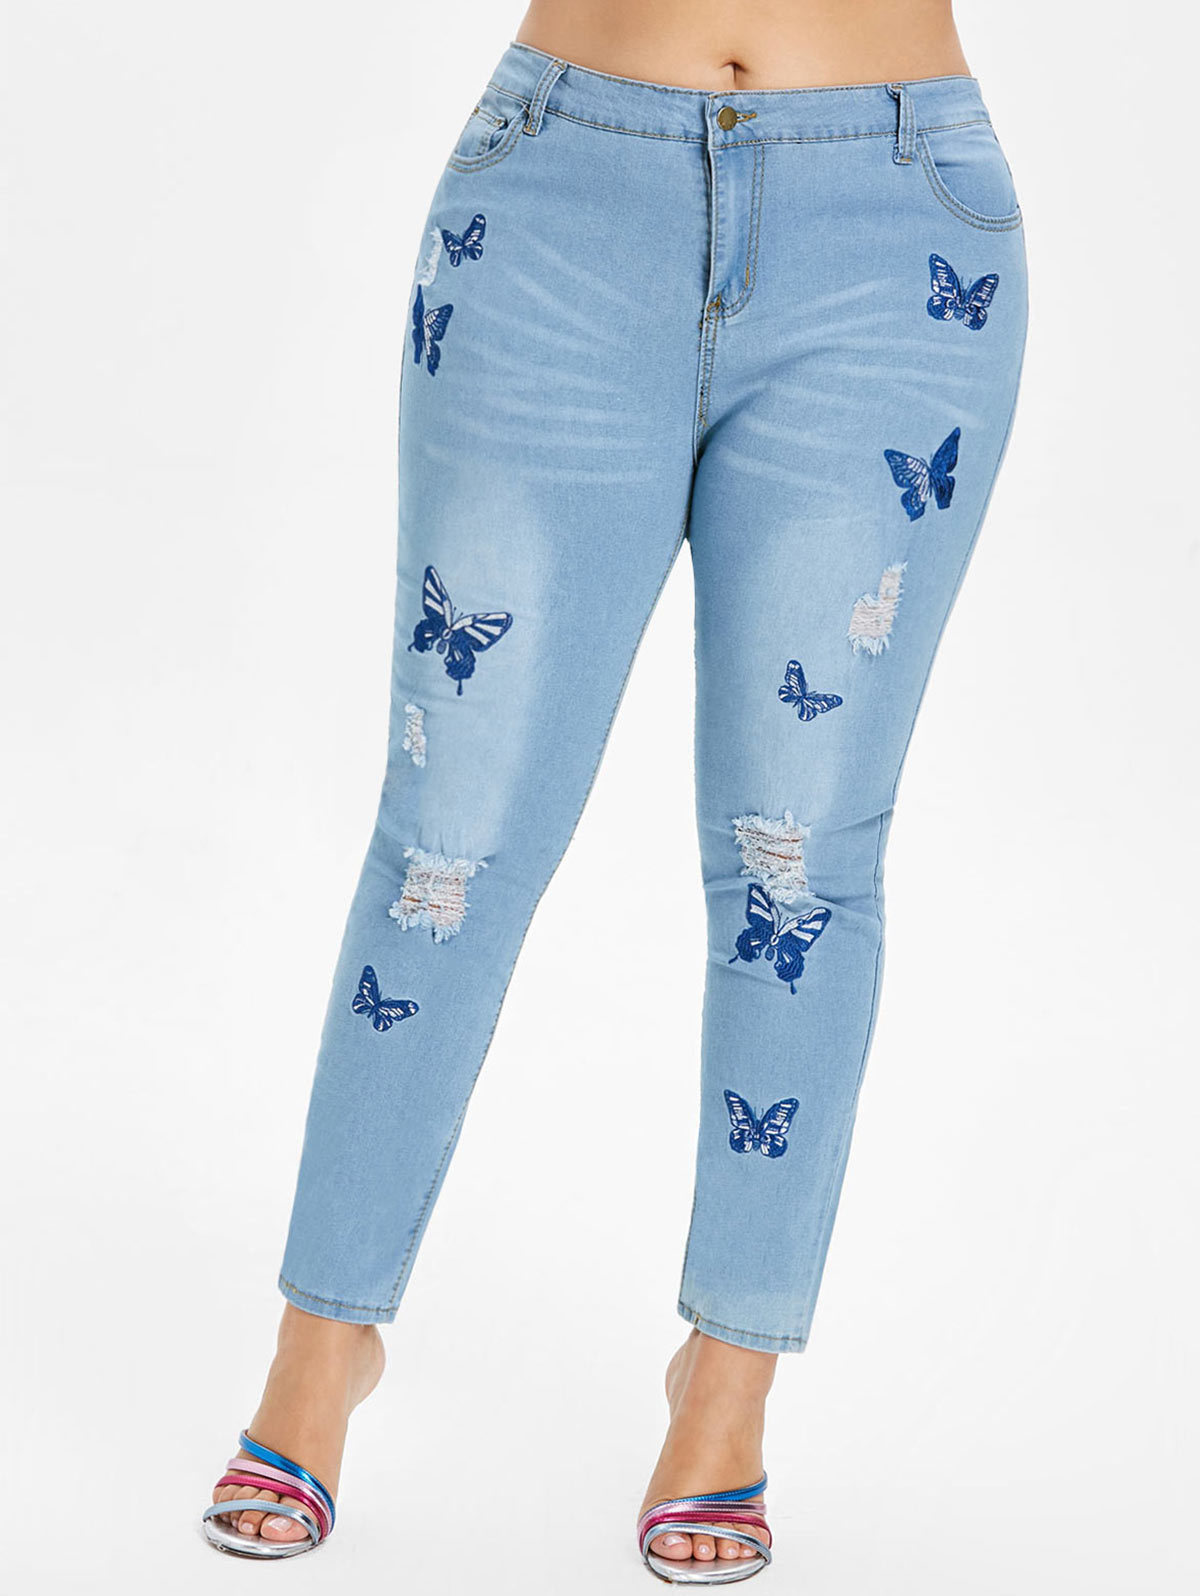 Wipalo Plus Size 5xl Butterfly Distressed Embroidered Jeans Women Pant Skinny High Waist Pencil Pants Denim Jean Ladies Trousers J190628